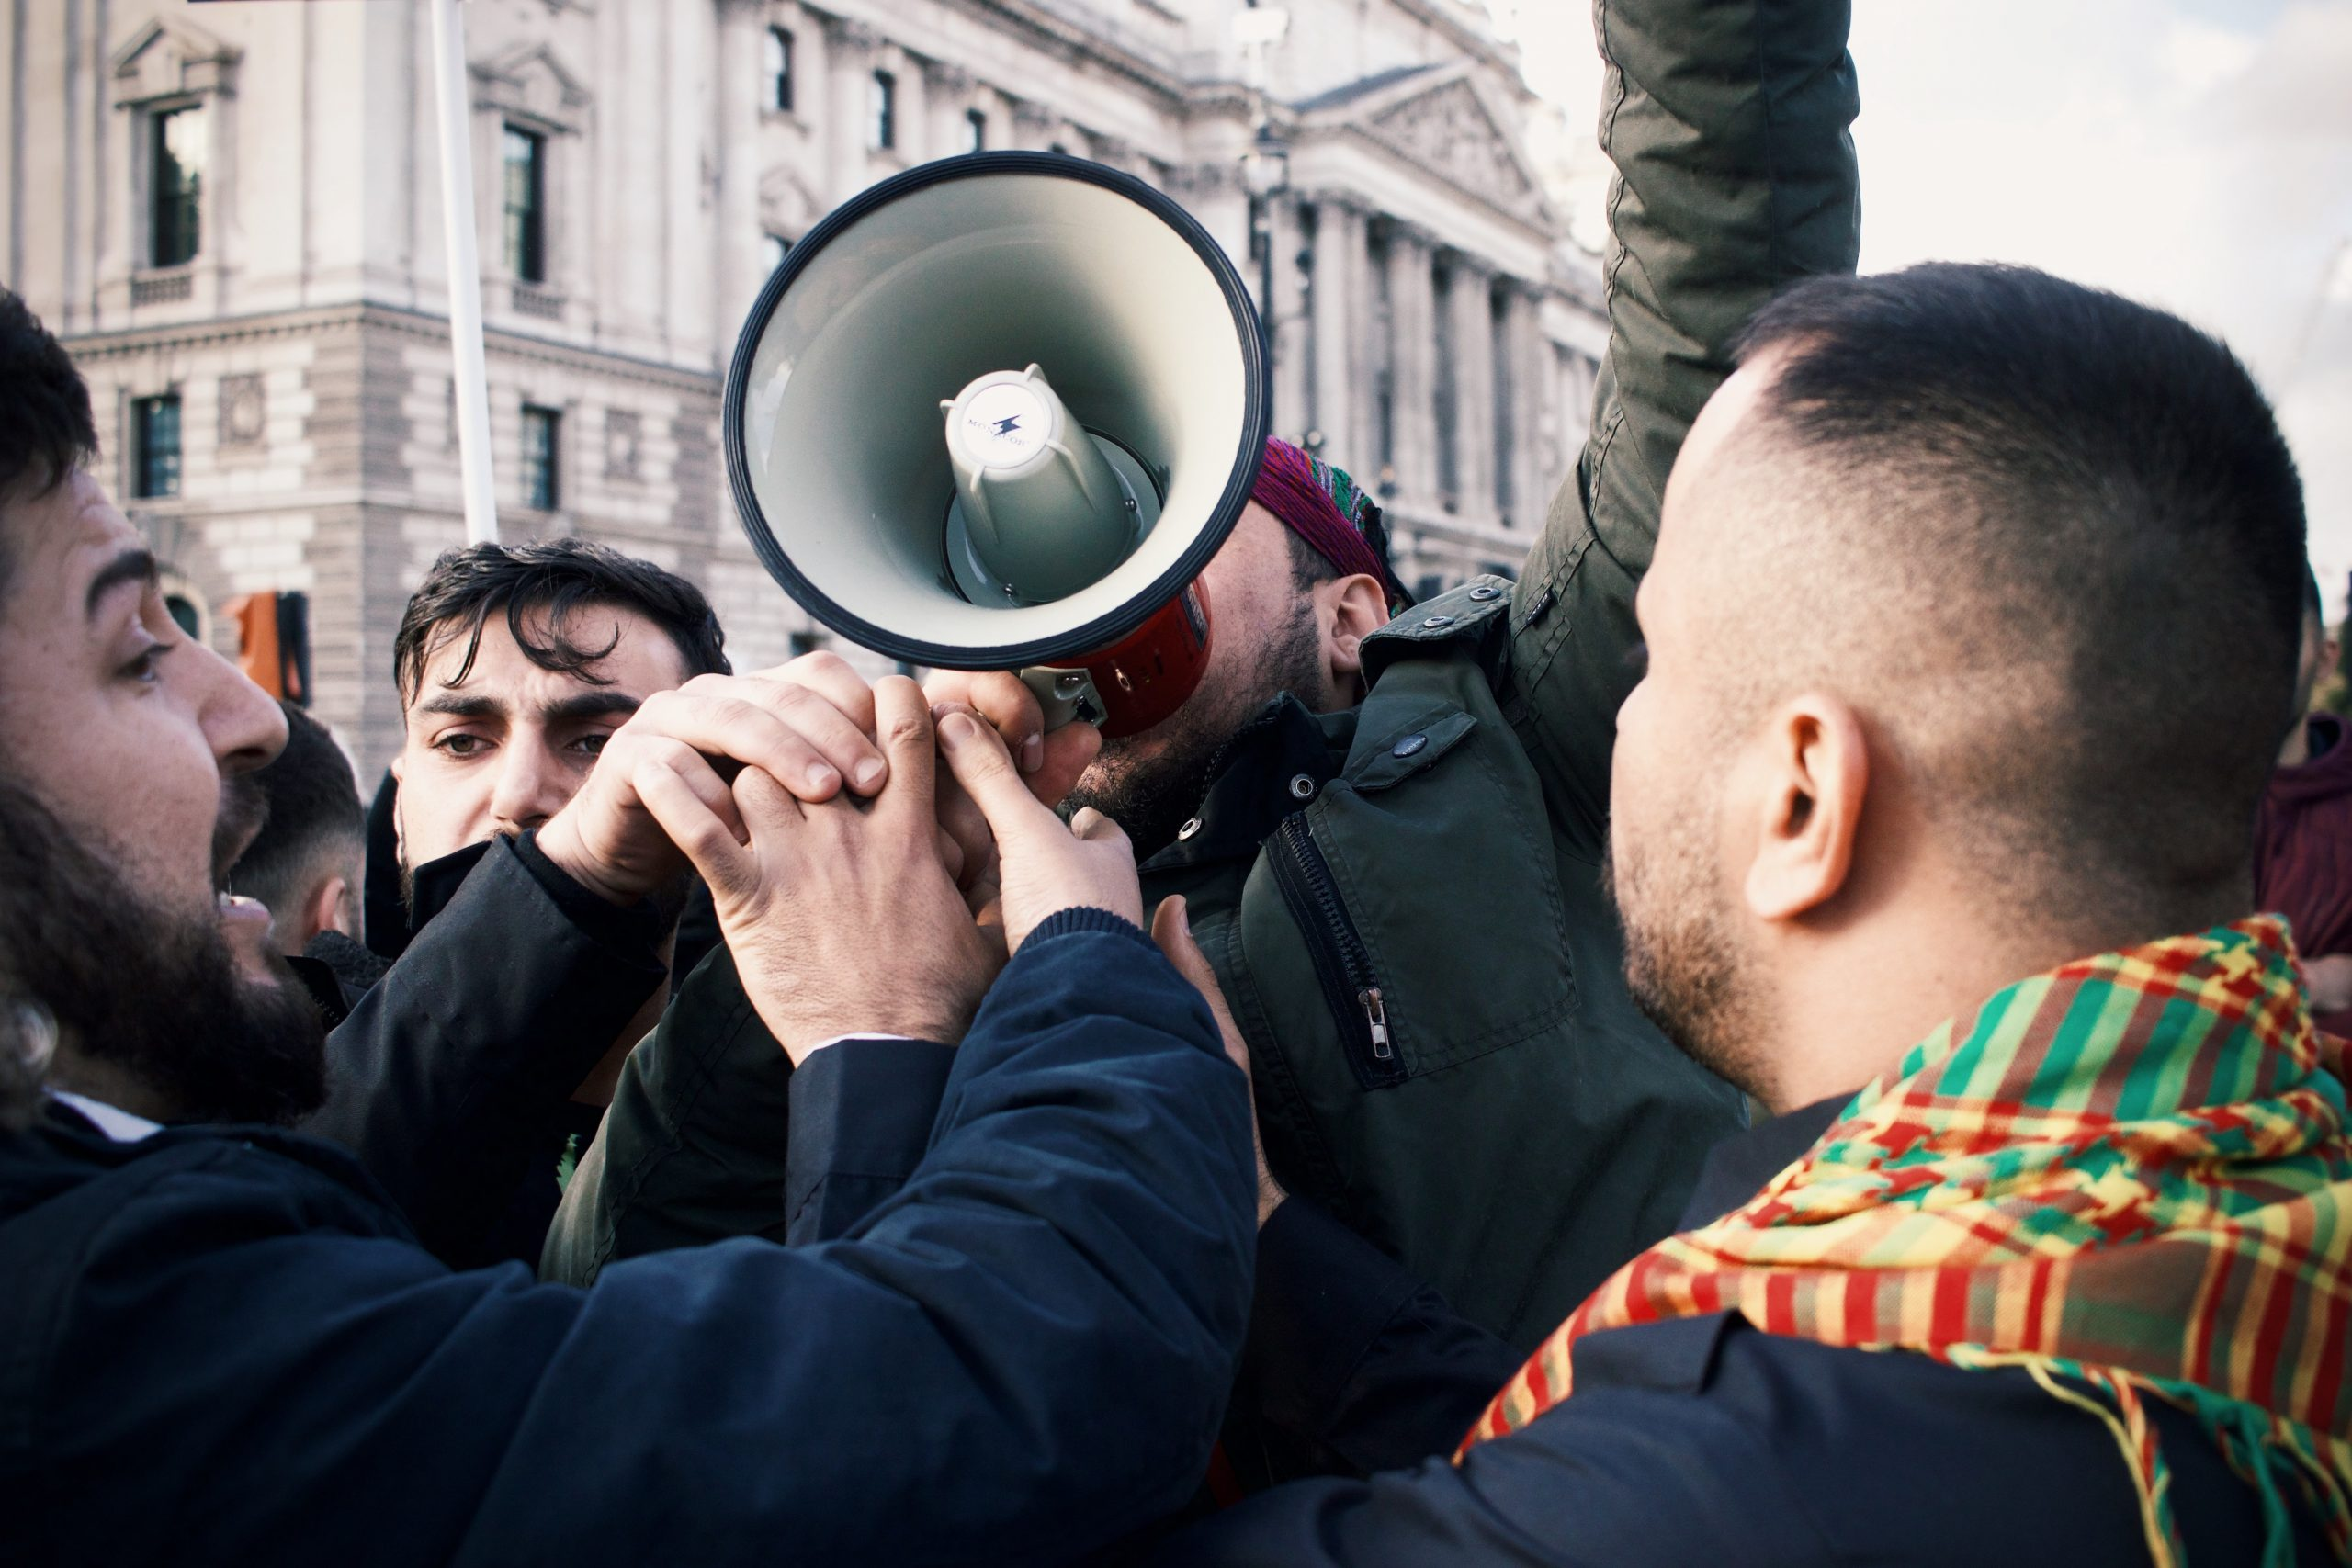 Protestors with megaphone